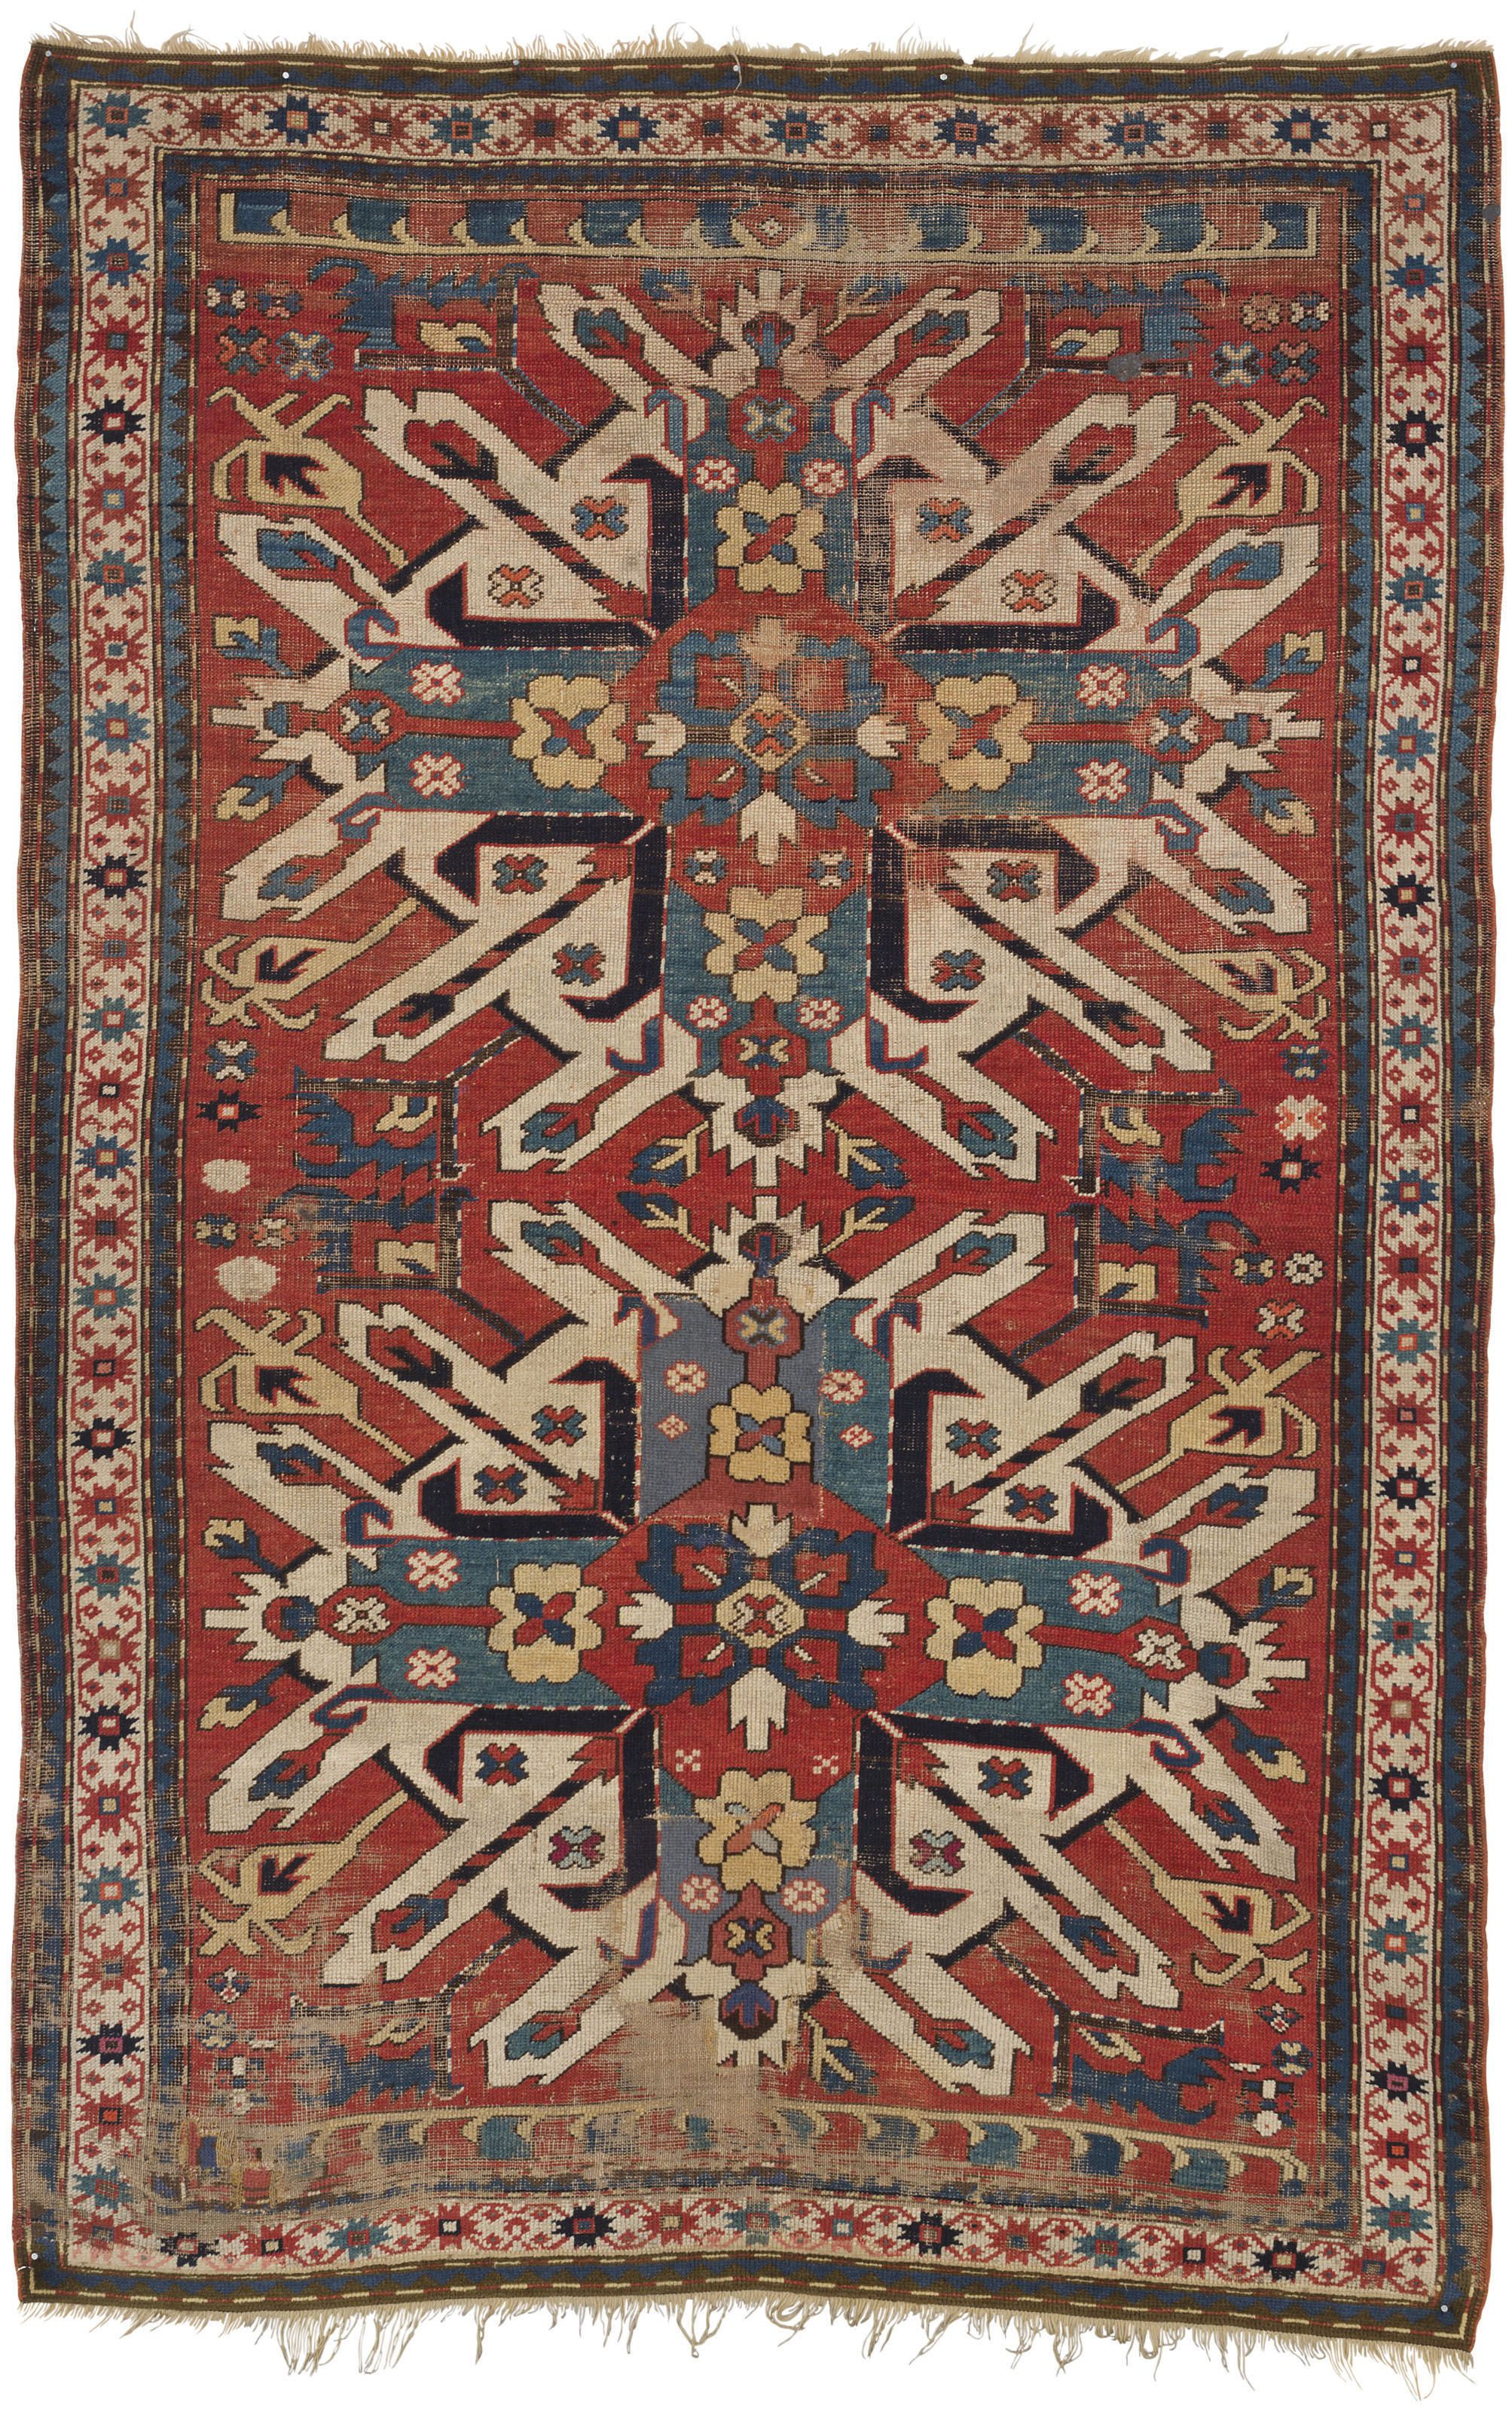 An Eagle Kazak Rug South Caucasus Circa 1880 Approximately 6 Ft 11 In X 4 Ft 8 In 211 Cm X 142 Cm Rugs Rugs On Carpet Asian Rugs